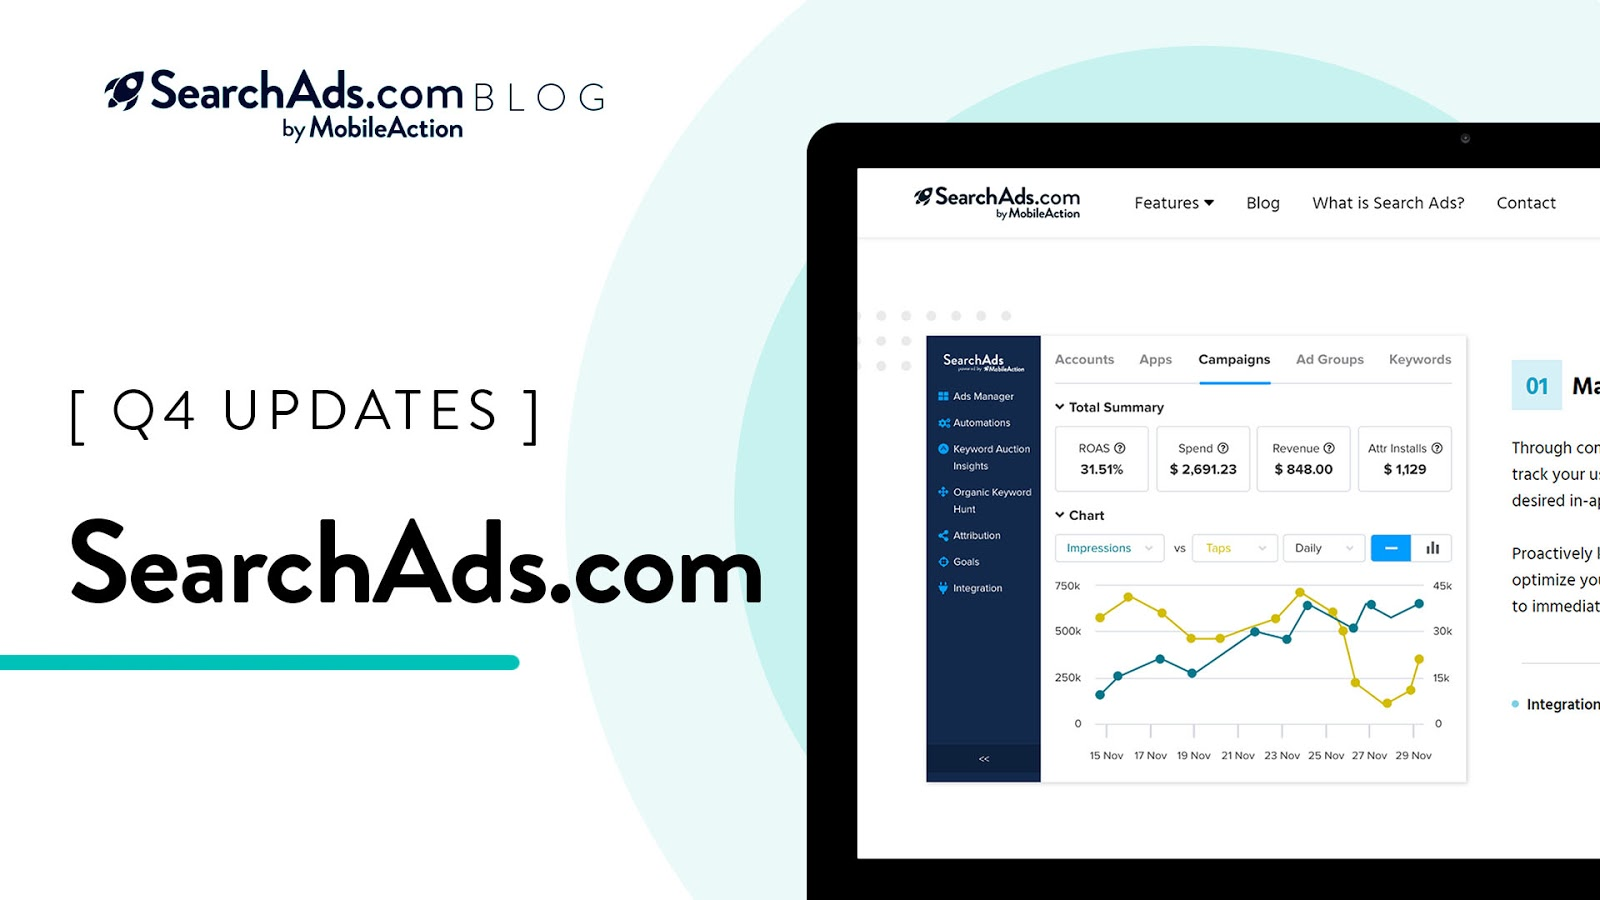 searchads.com dashboard